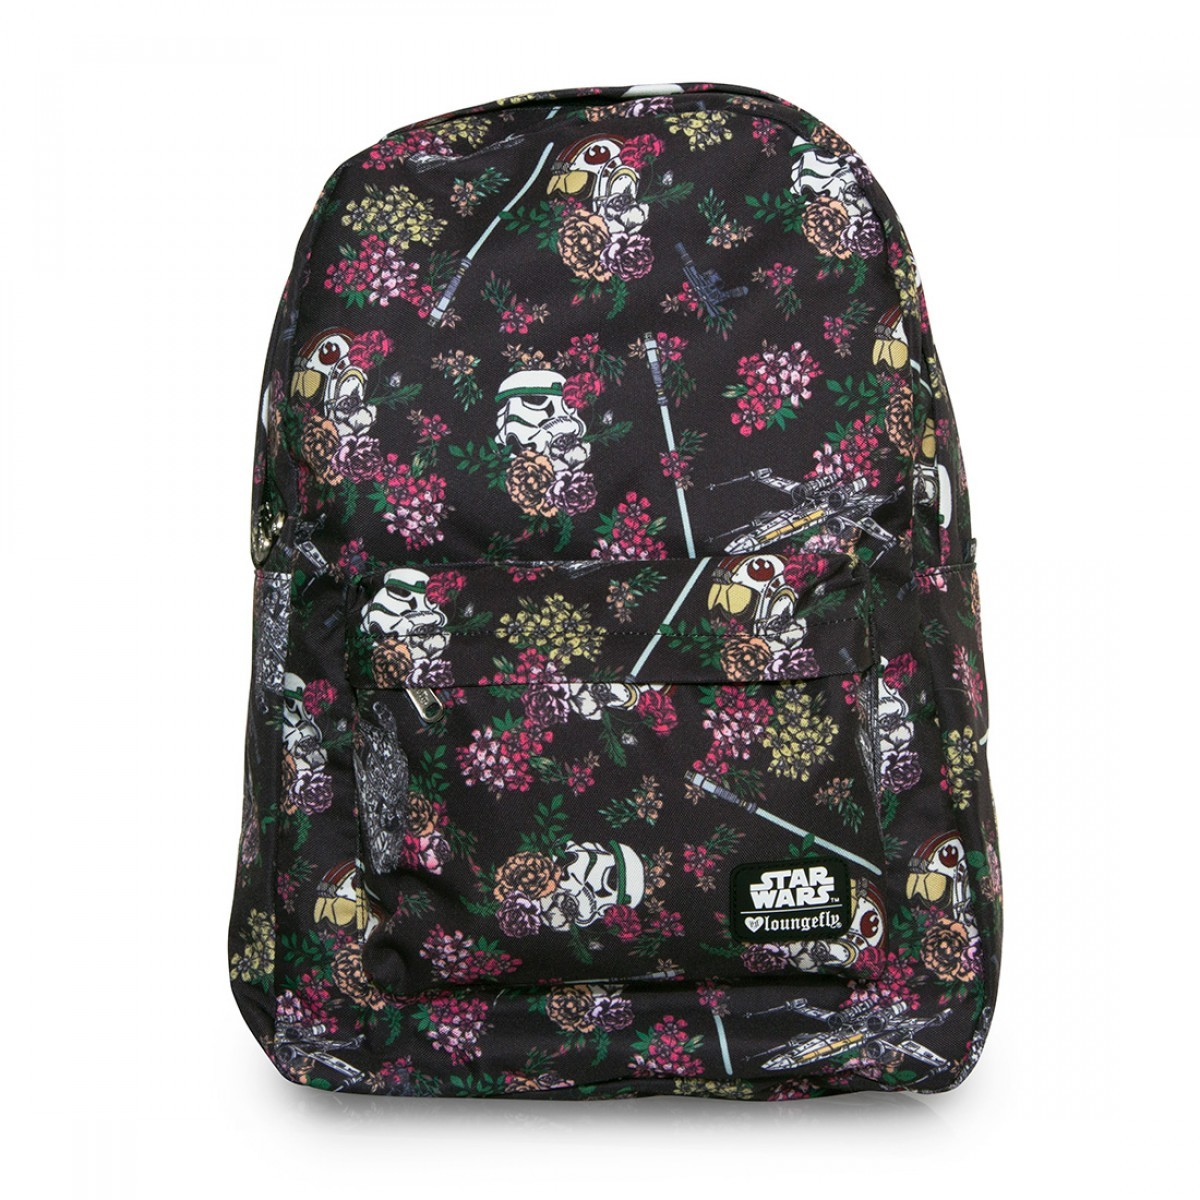 Loungefly Star Wars Floral Stormtrooper Backpack image